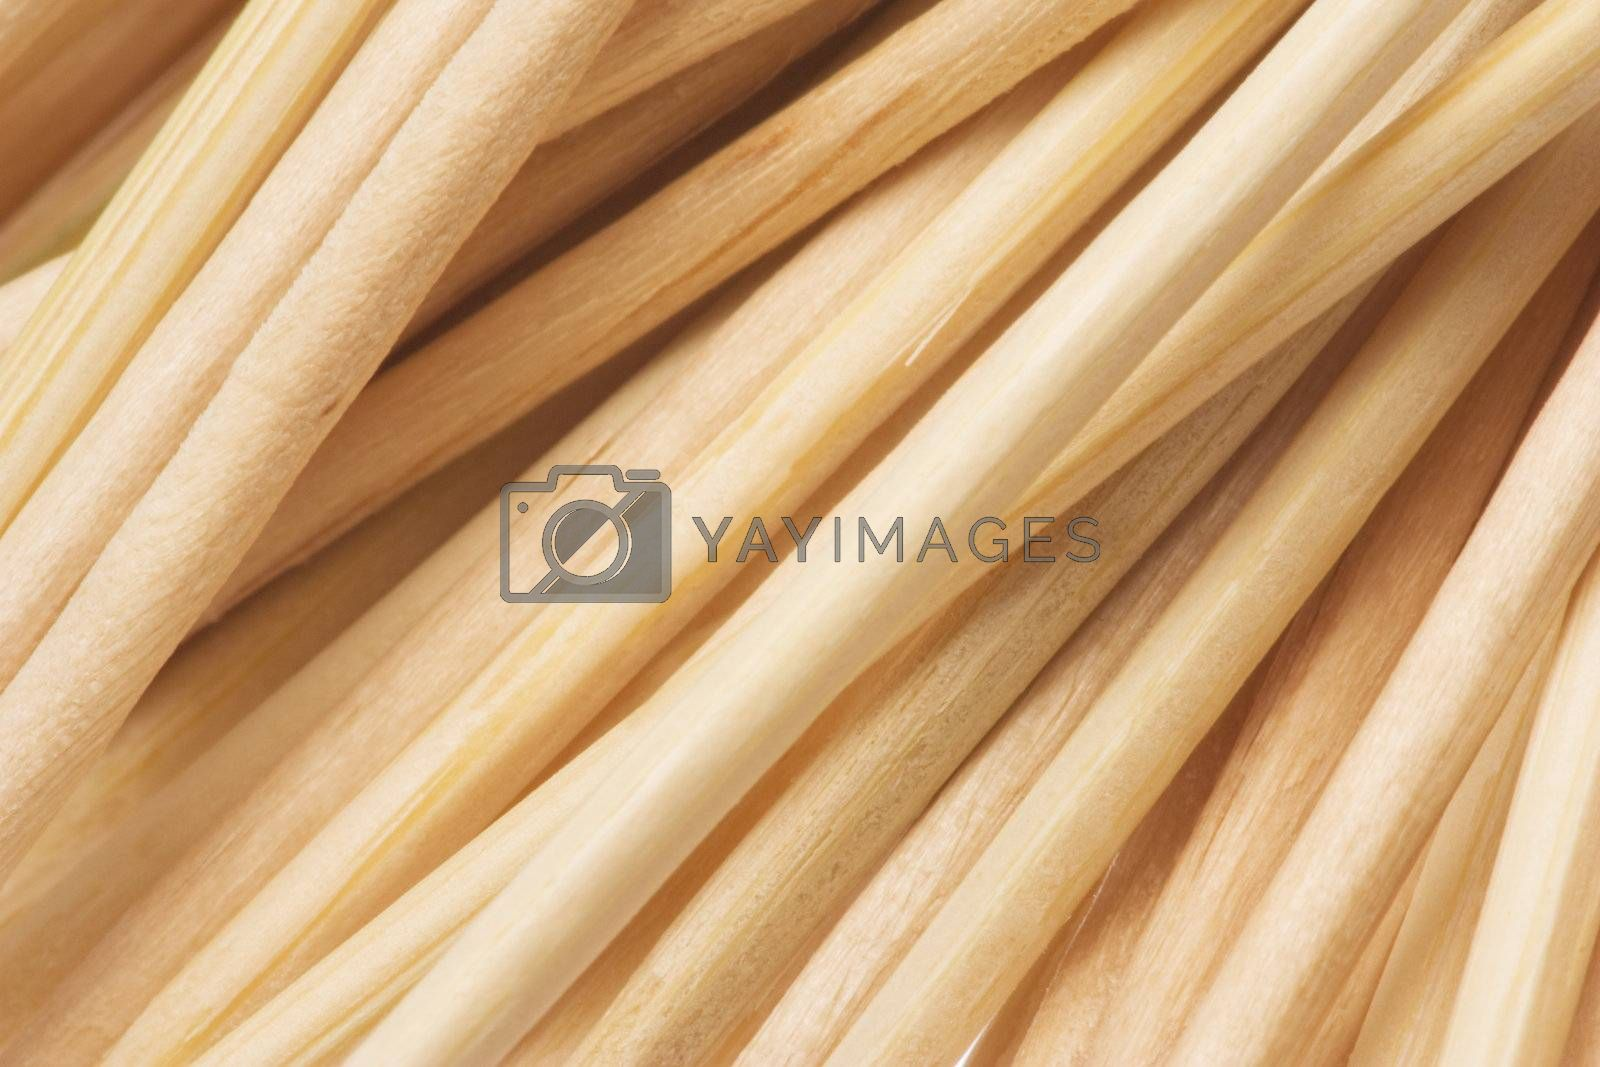 Isolated macro image of wooden toothpicks texture.